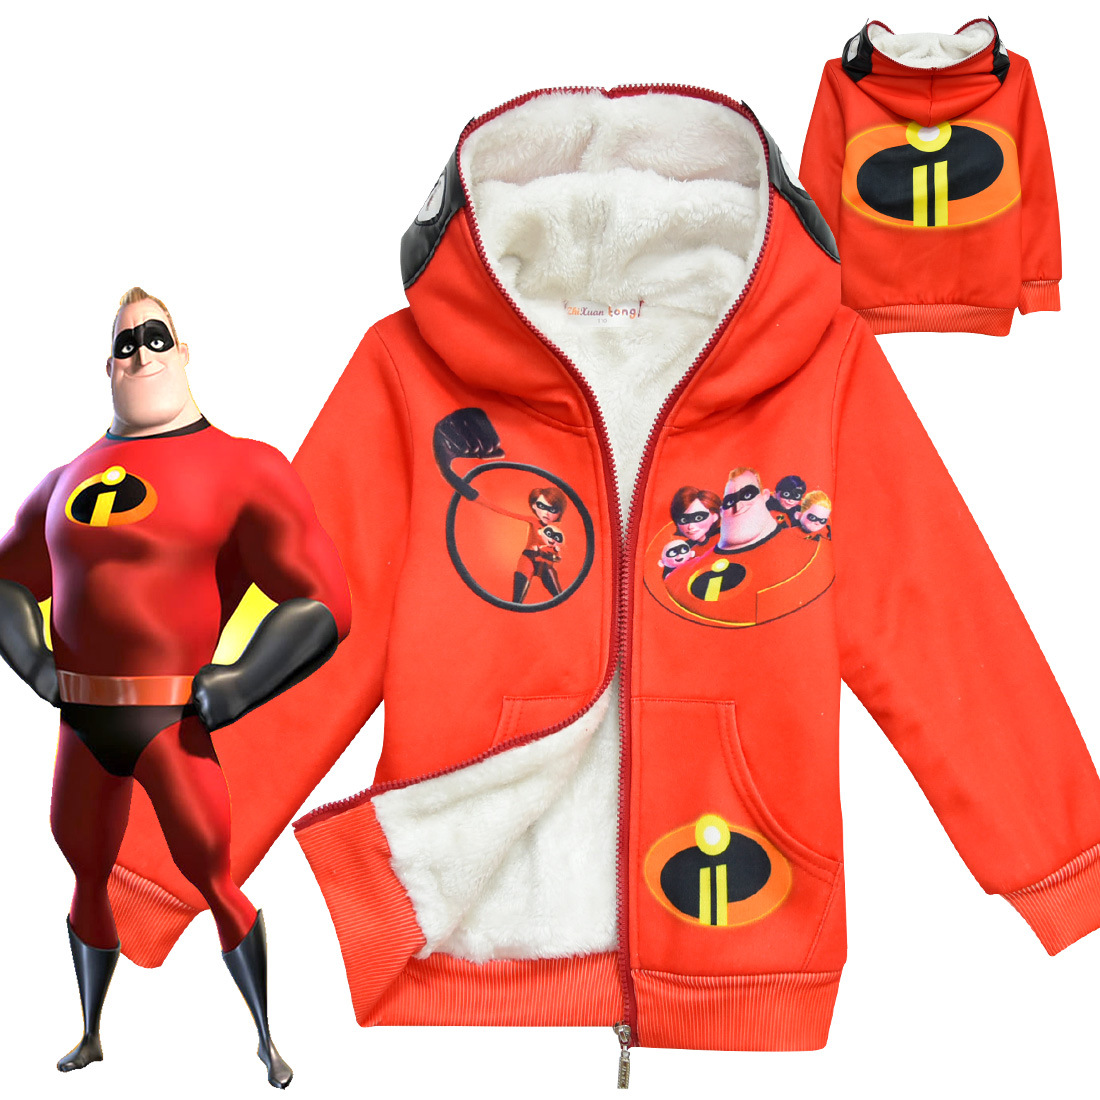 The Incredibles 2 Kids Thick Hoodies Autumn Winter Sweatshirt Boy's Girl's Top Outwear Coat Children's Halloween Cosplay Costume